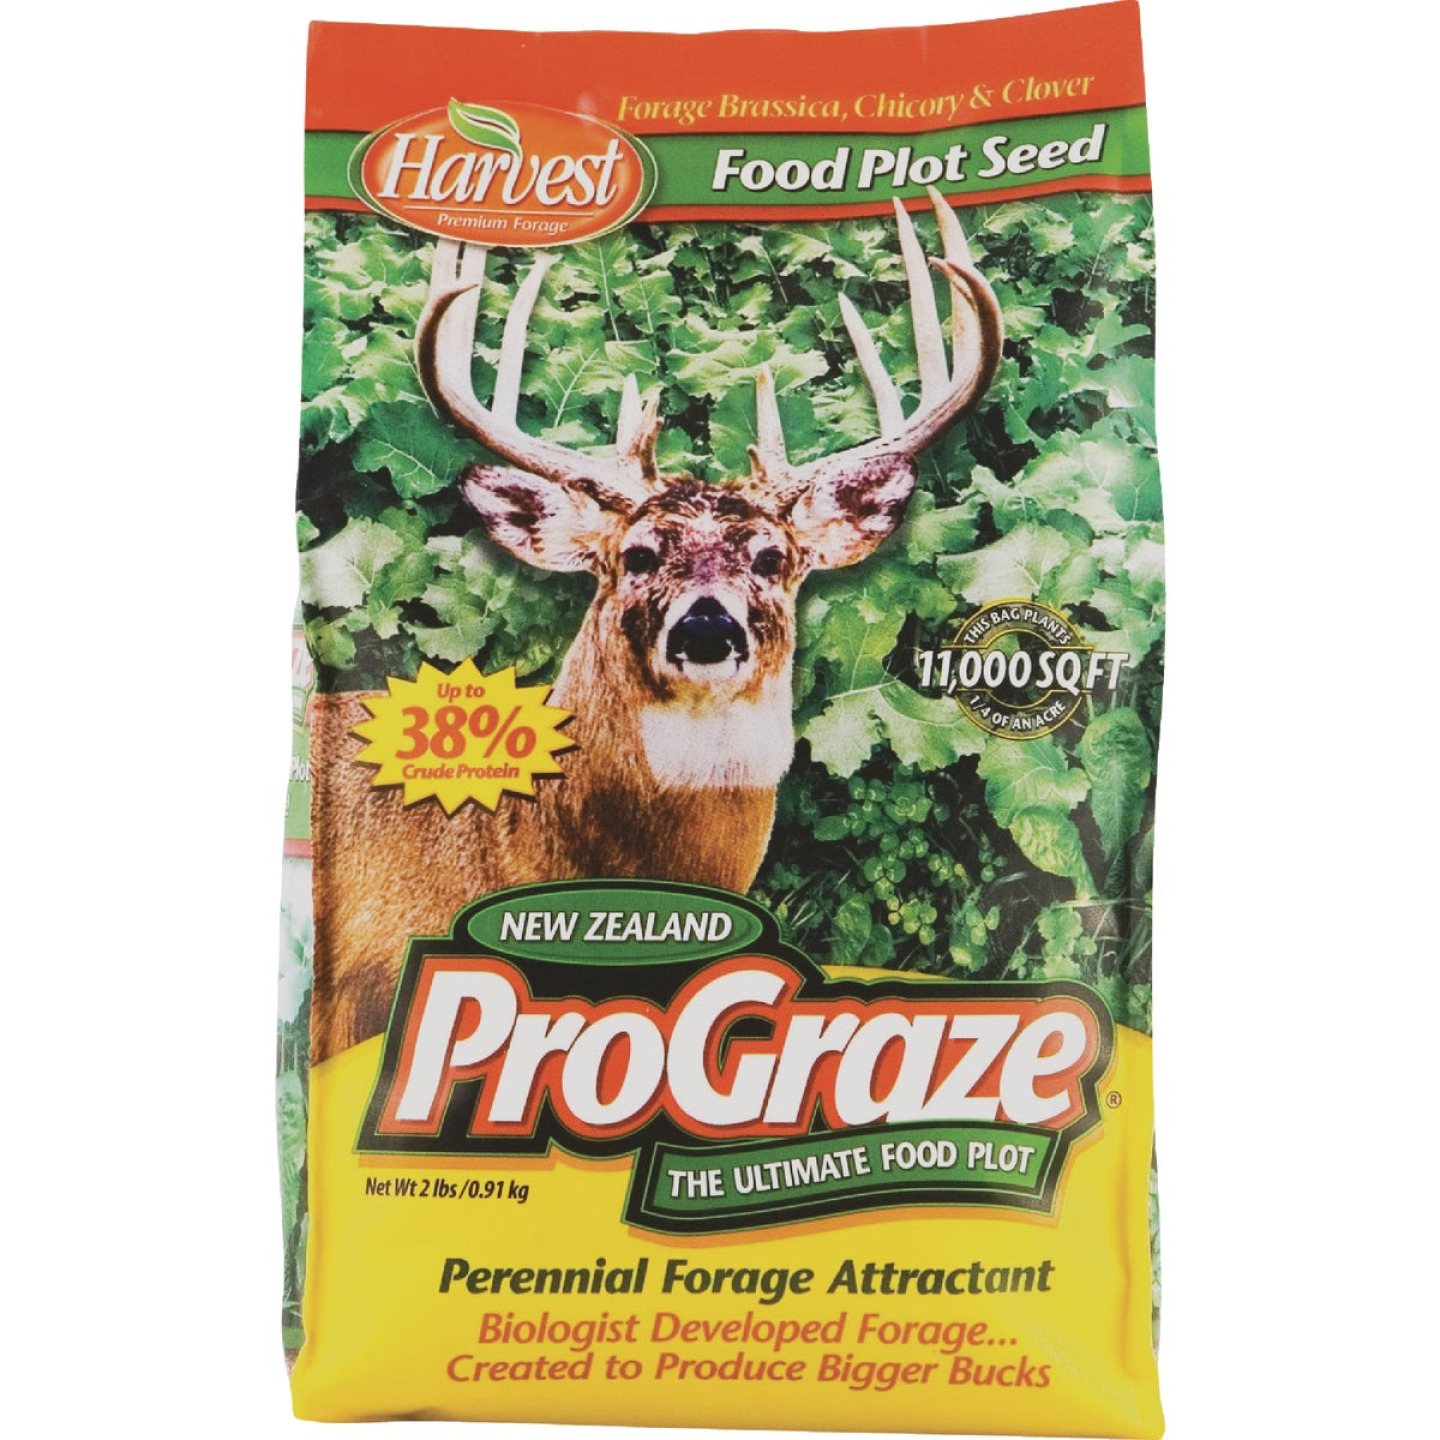 Evolved Harvest Pro Graze 2 Lb. 11,000 Sq. Ft. Coverage Area Brassica, Chicory, & Clover Perennial Deer Forage Image 1